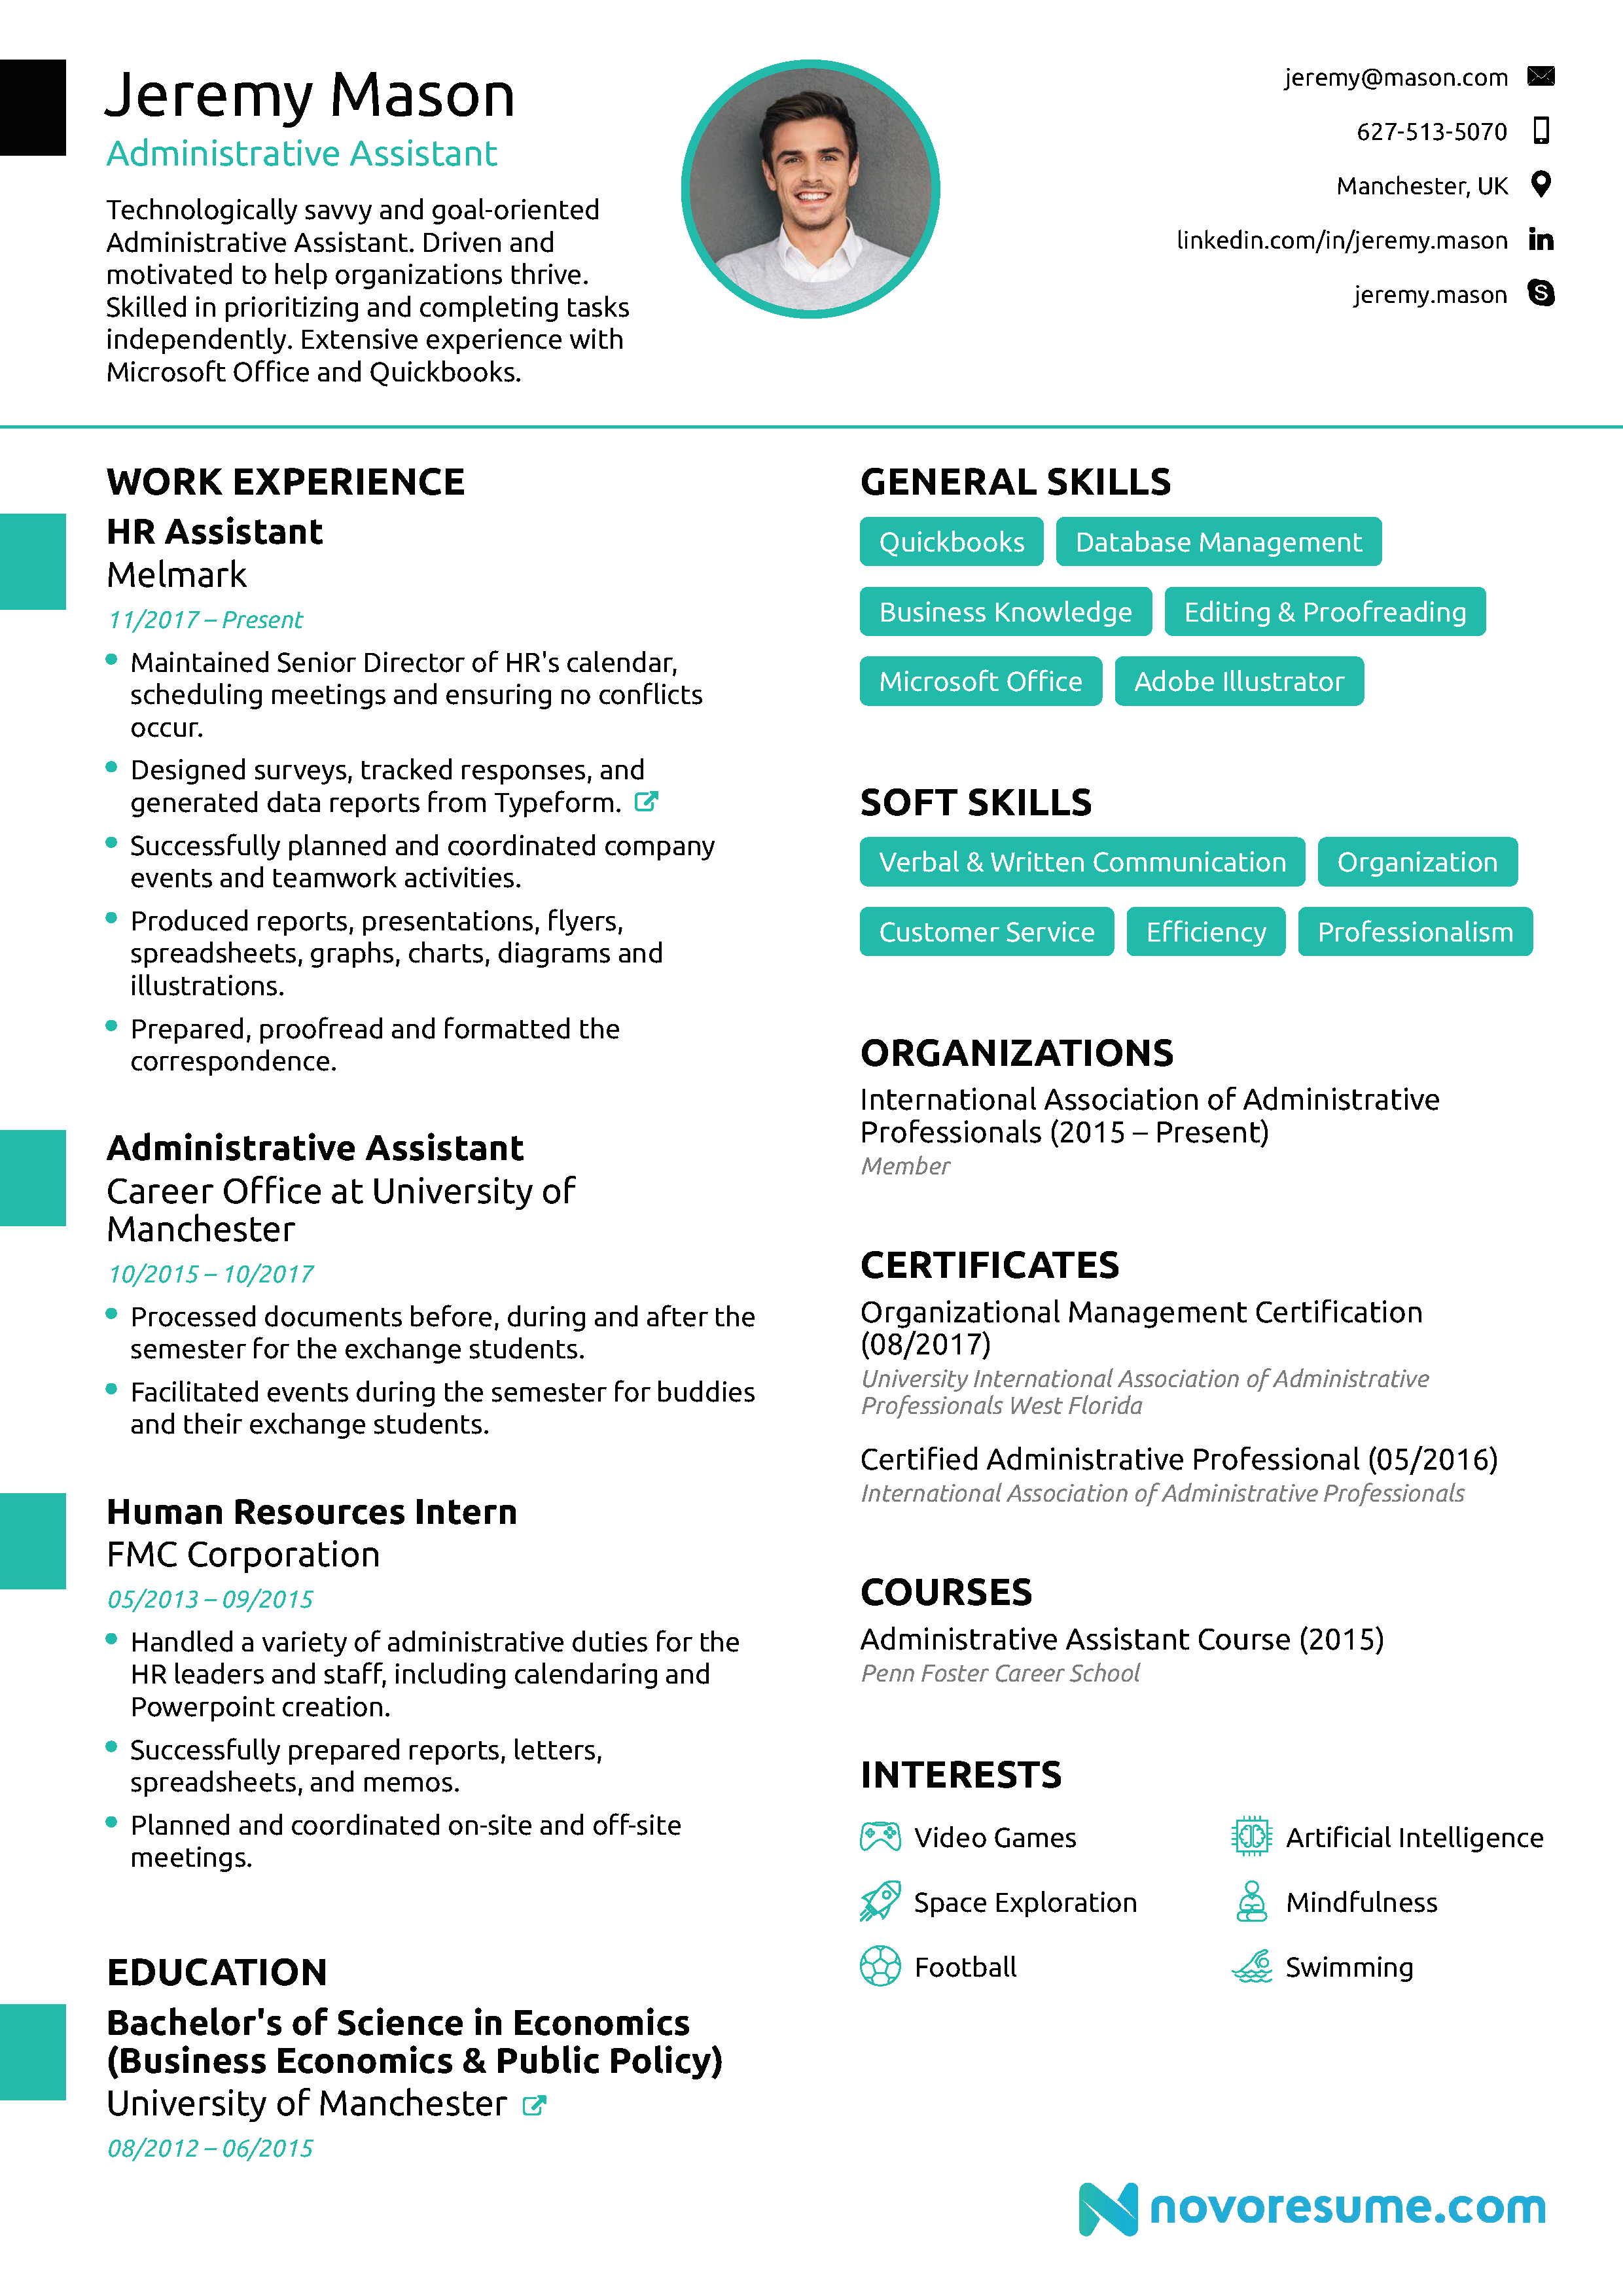 job application cv headline sample